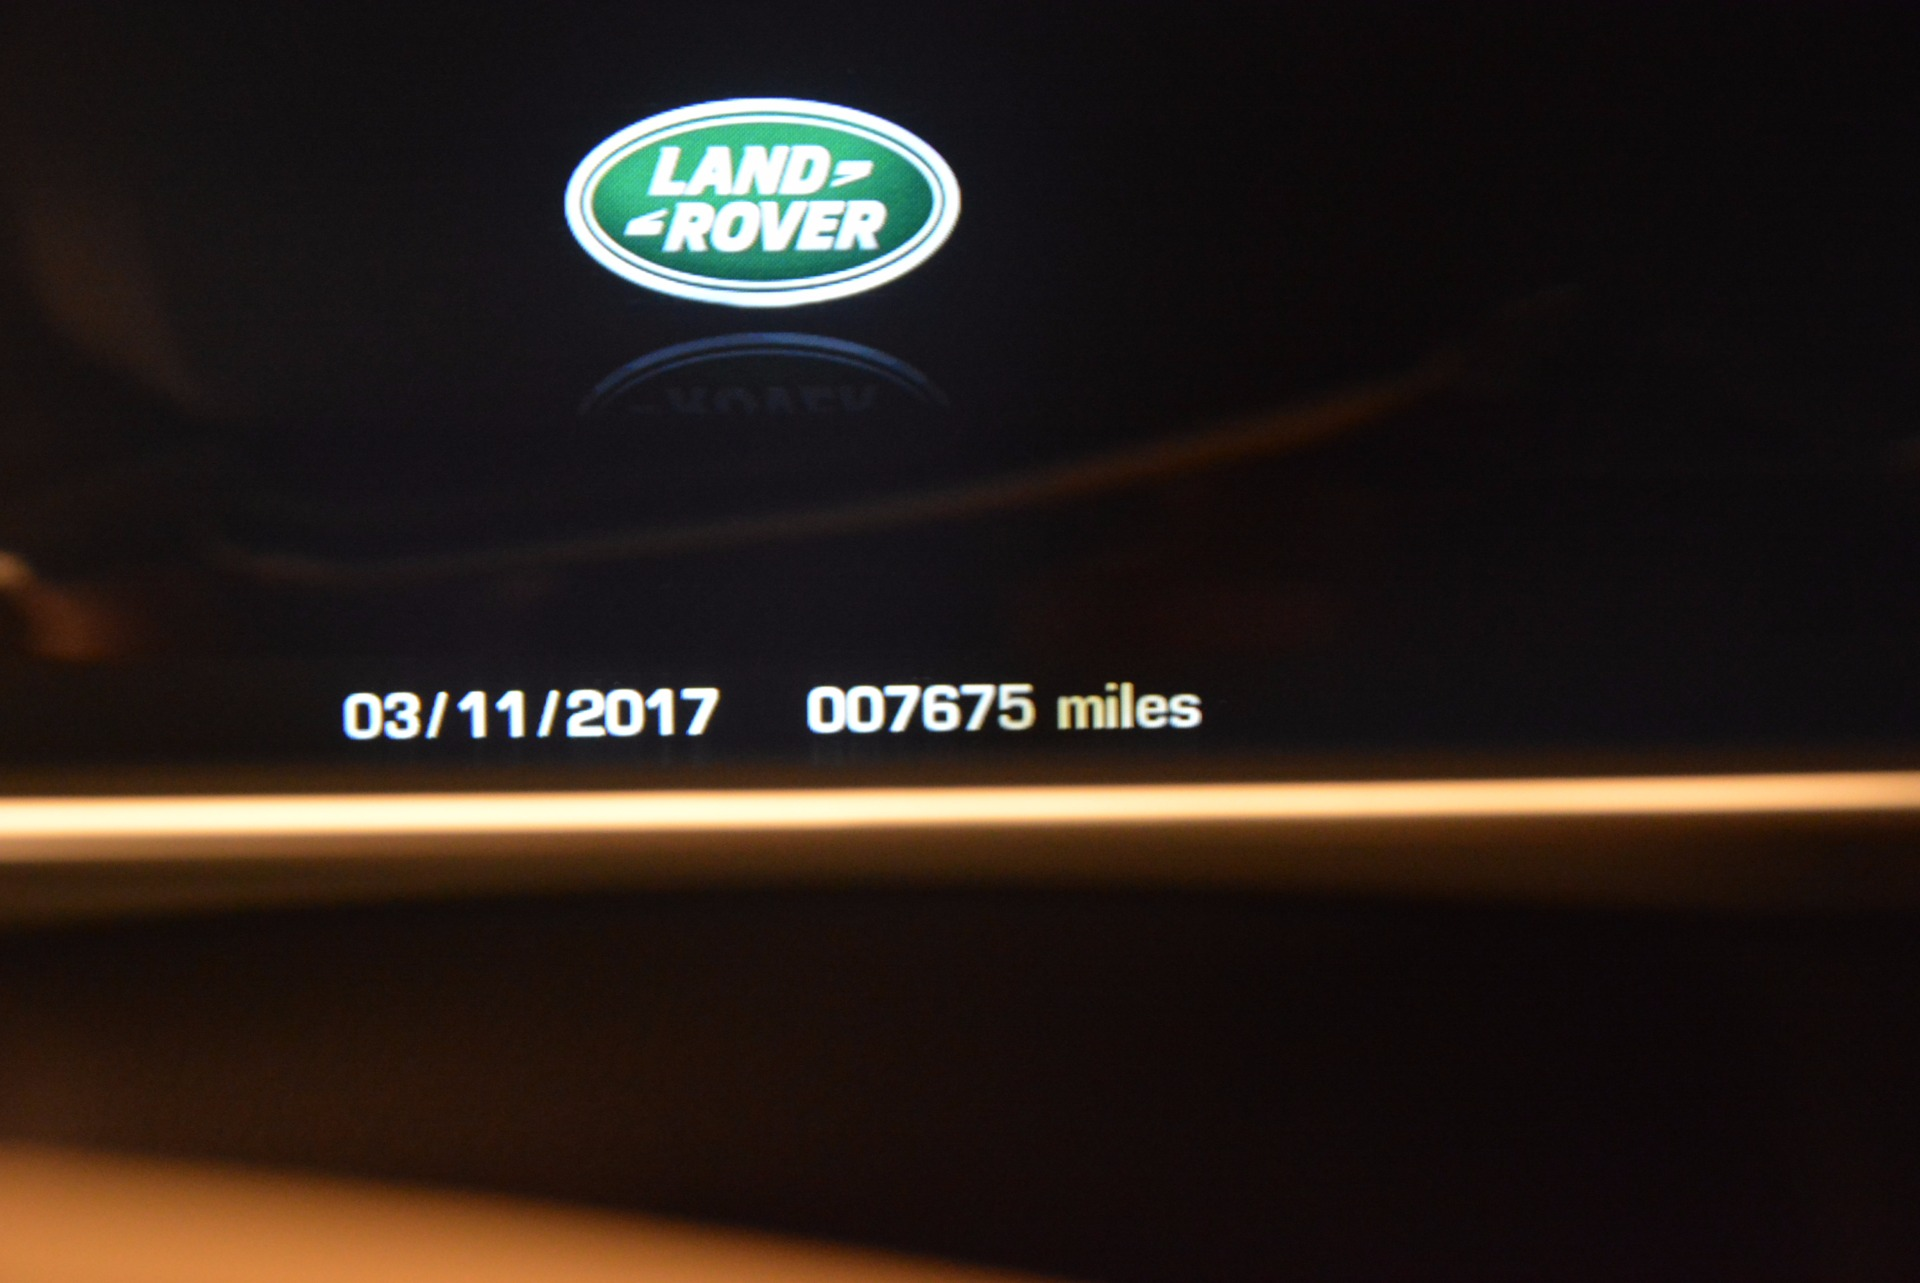 Used 2016 Land Rover Range Rover HSE TD6 For Sale 0 In Greenwich, CT